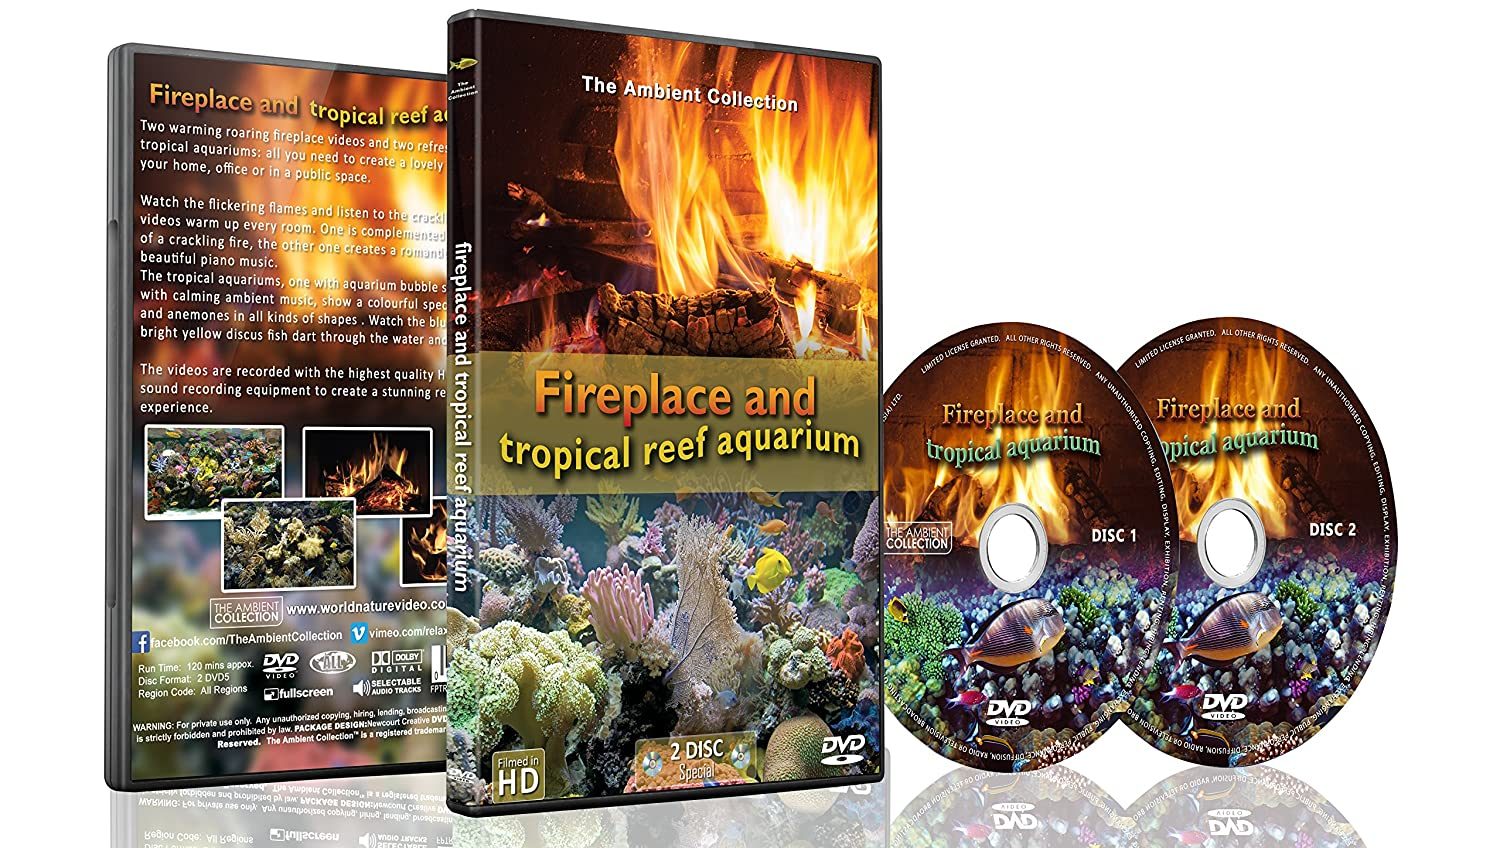 fire and fish 2 dvd set fireplace and tropical reef aquarium